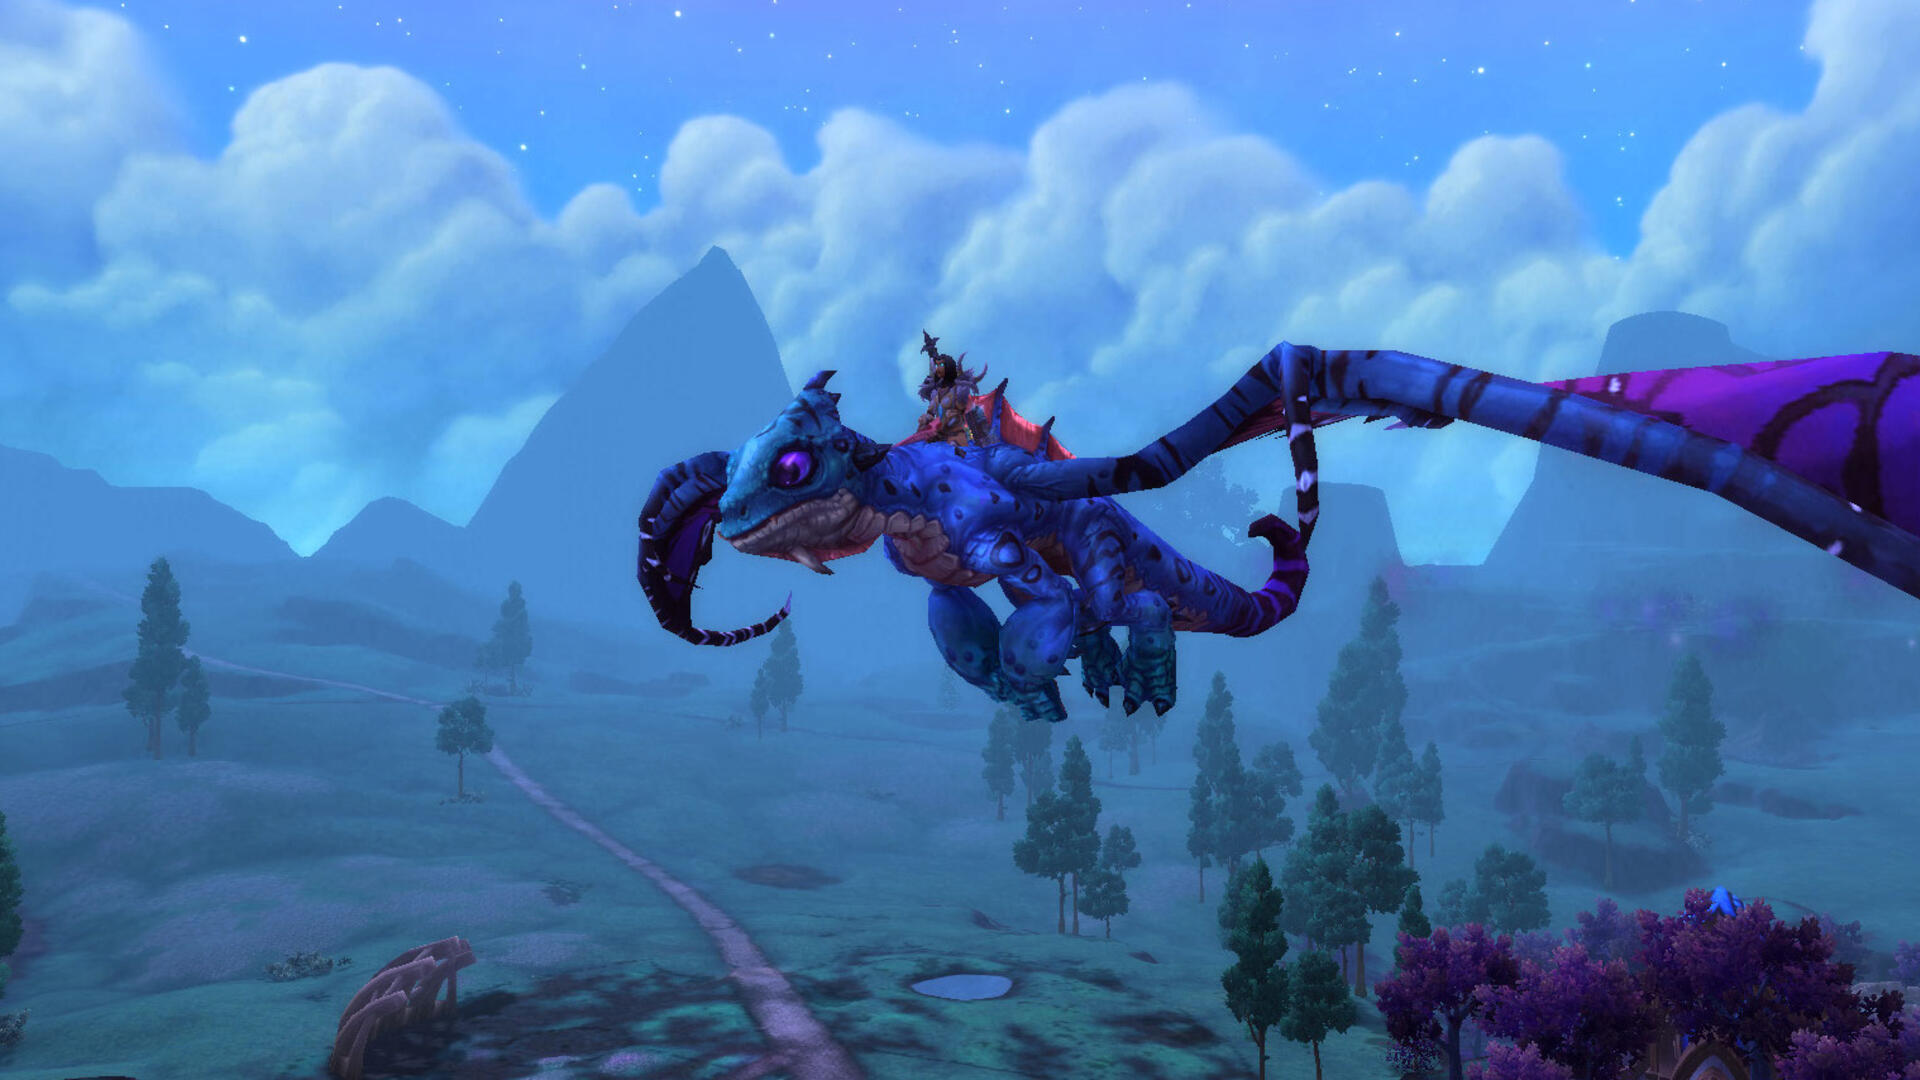 World of Warcraft: Warlords of Draenor PC Review: Overly Overhauled